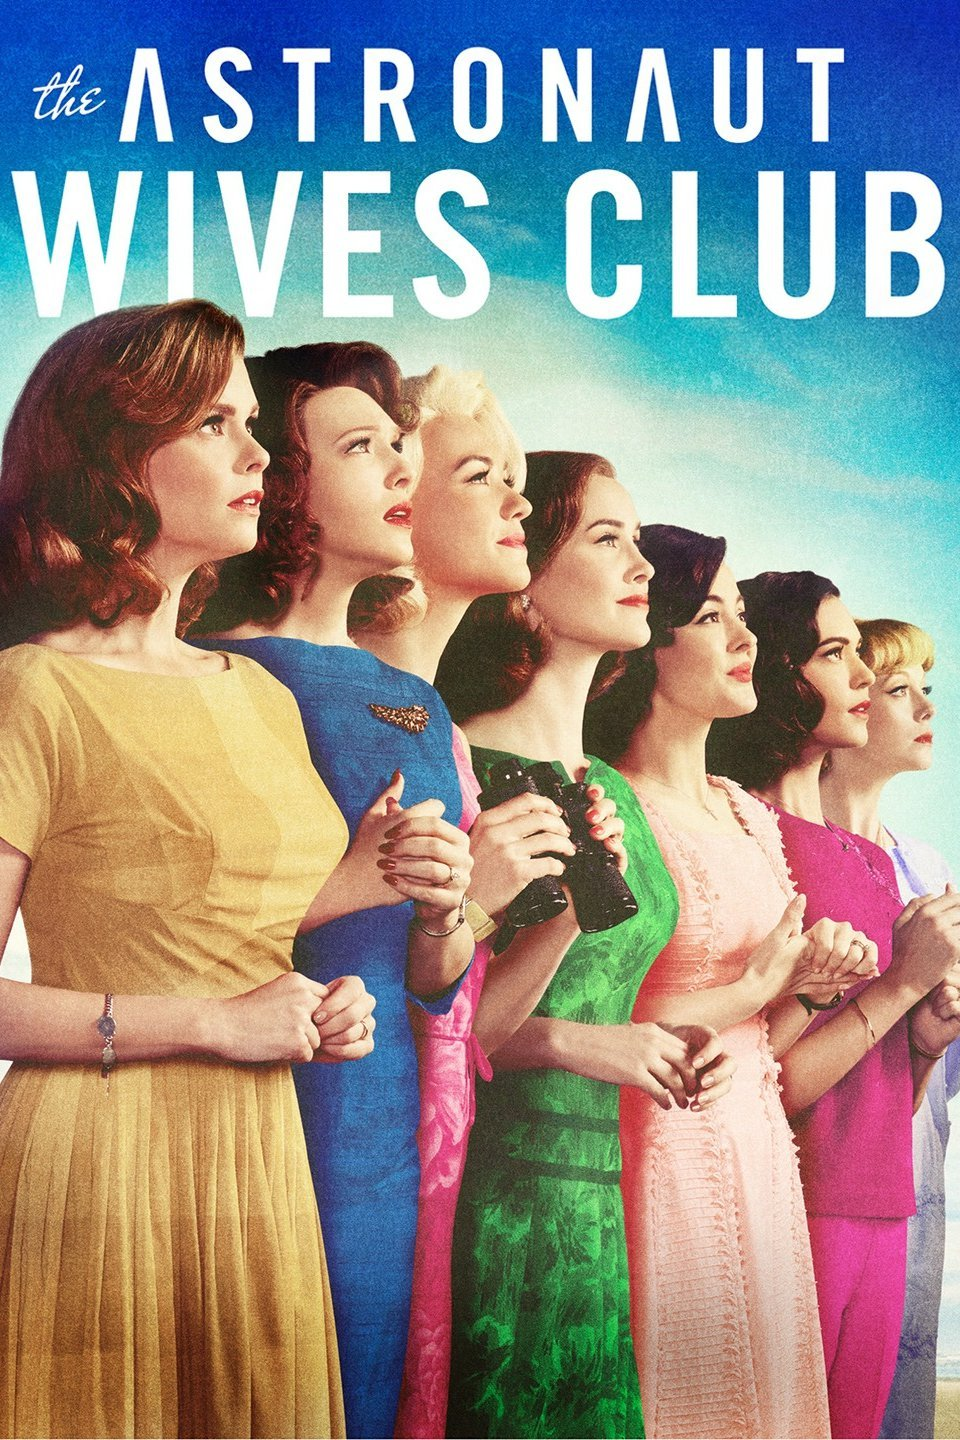 Astronaut Wives' Club